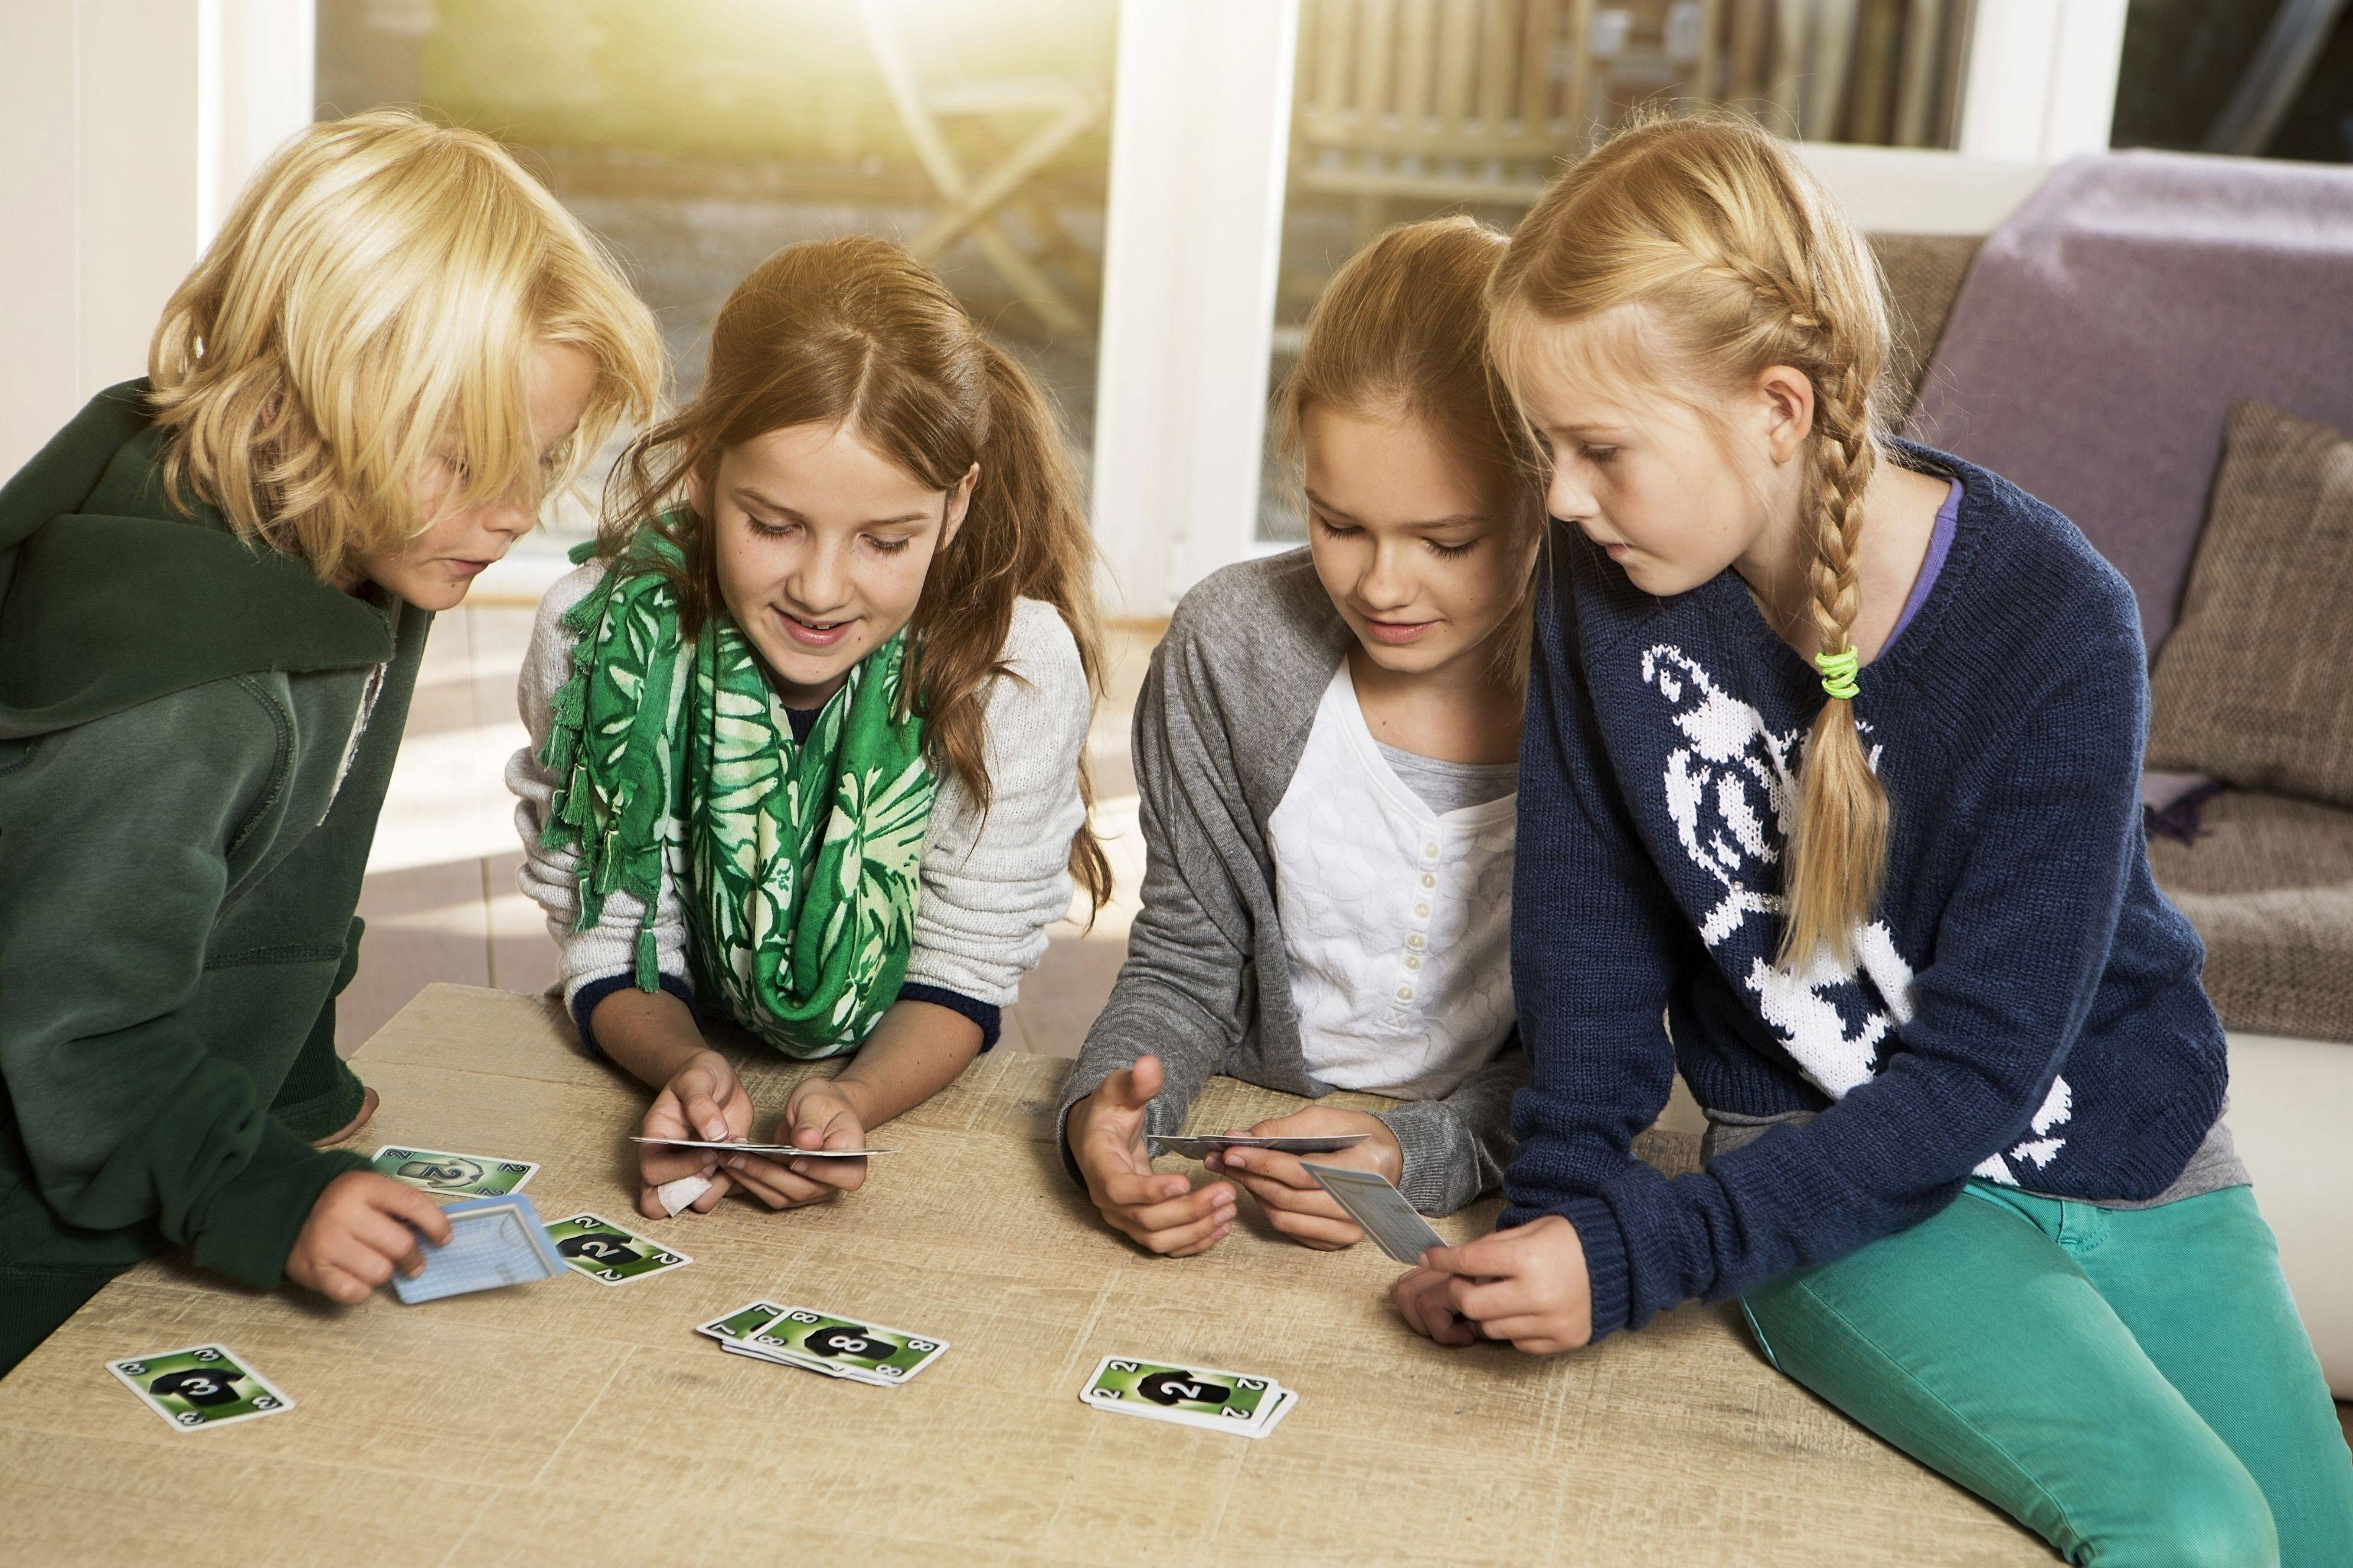 four children playing card game in living room 5ade2c6aa9d4f c673e